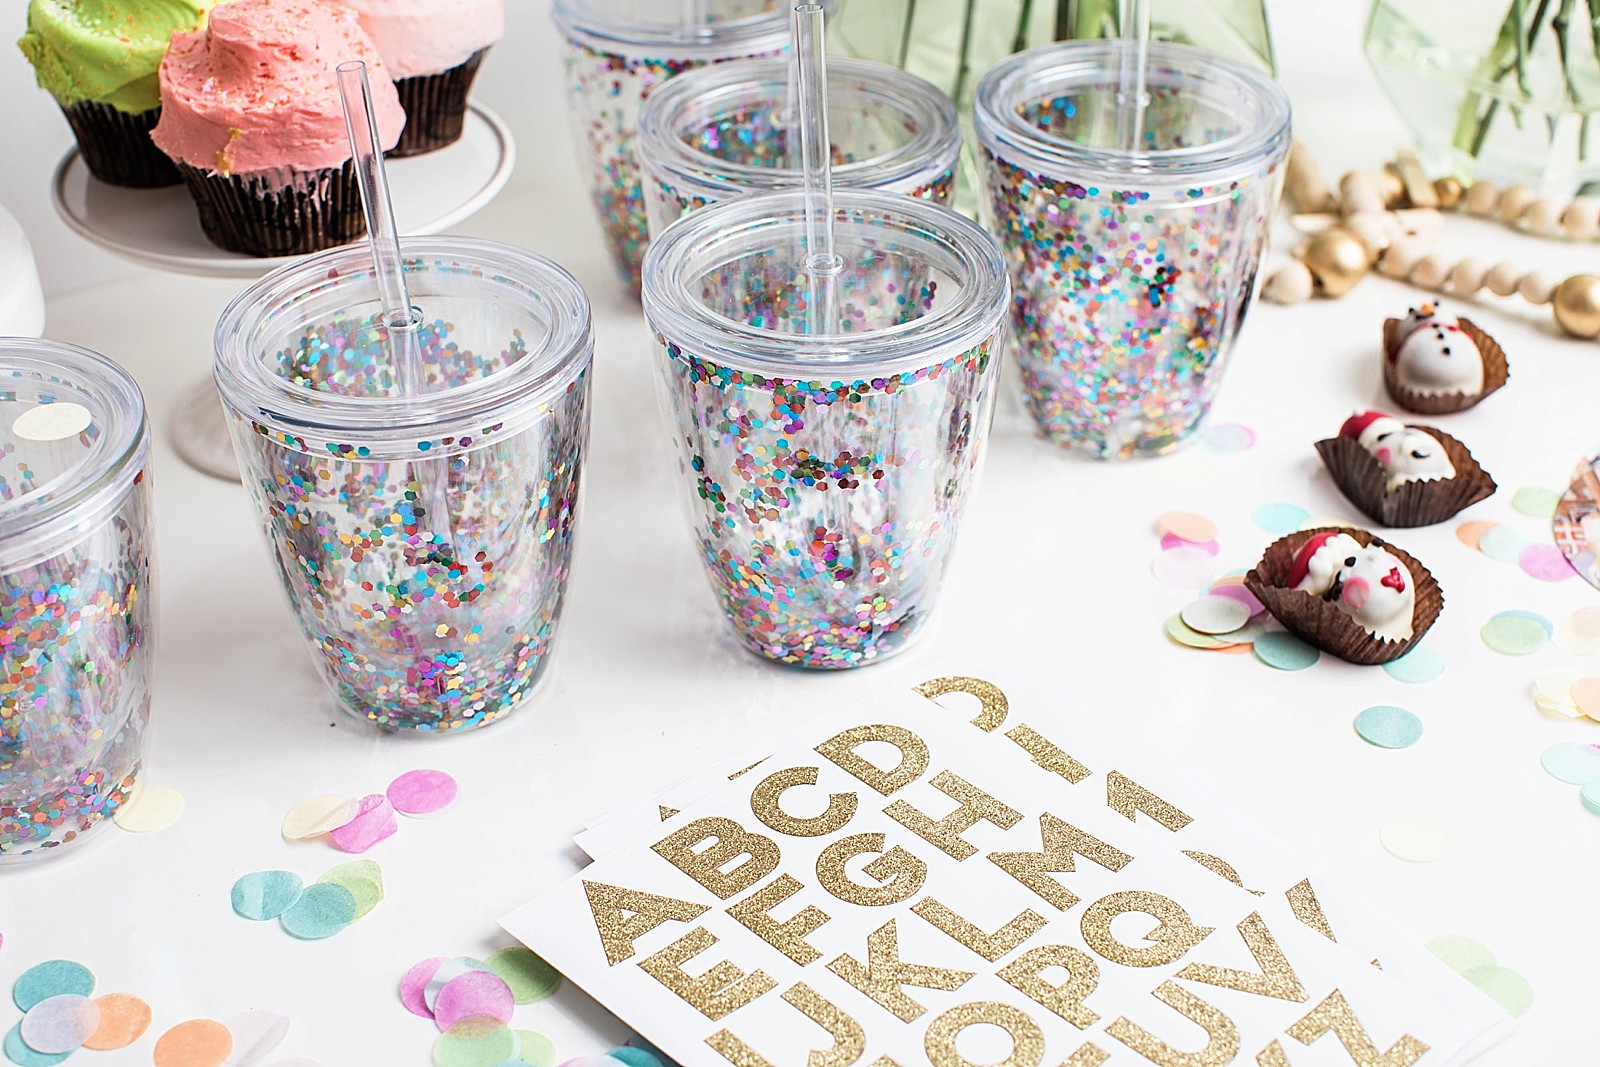 coca-cola-party-christmas-party-dessert-idea-how-to-personalize-tumbler-_0054